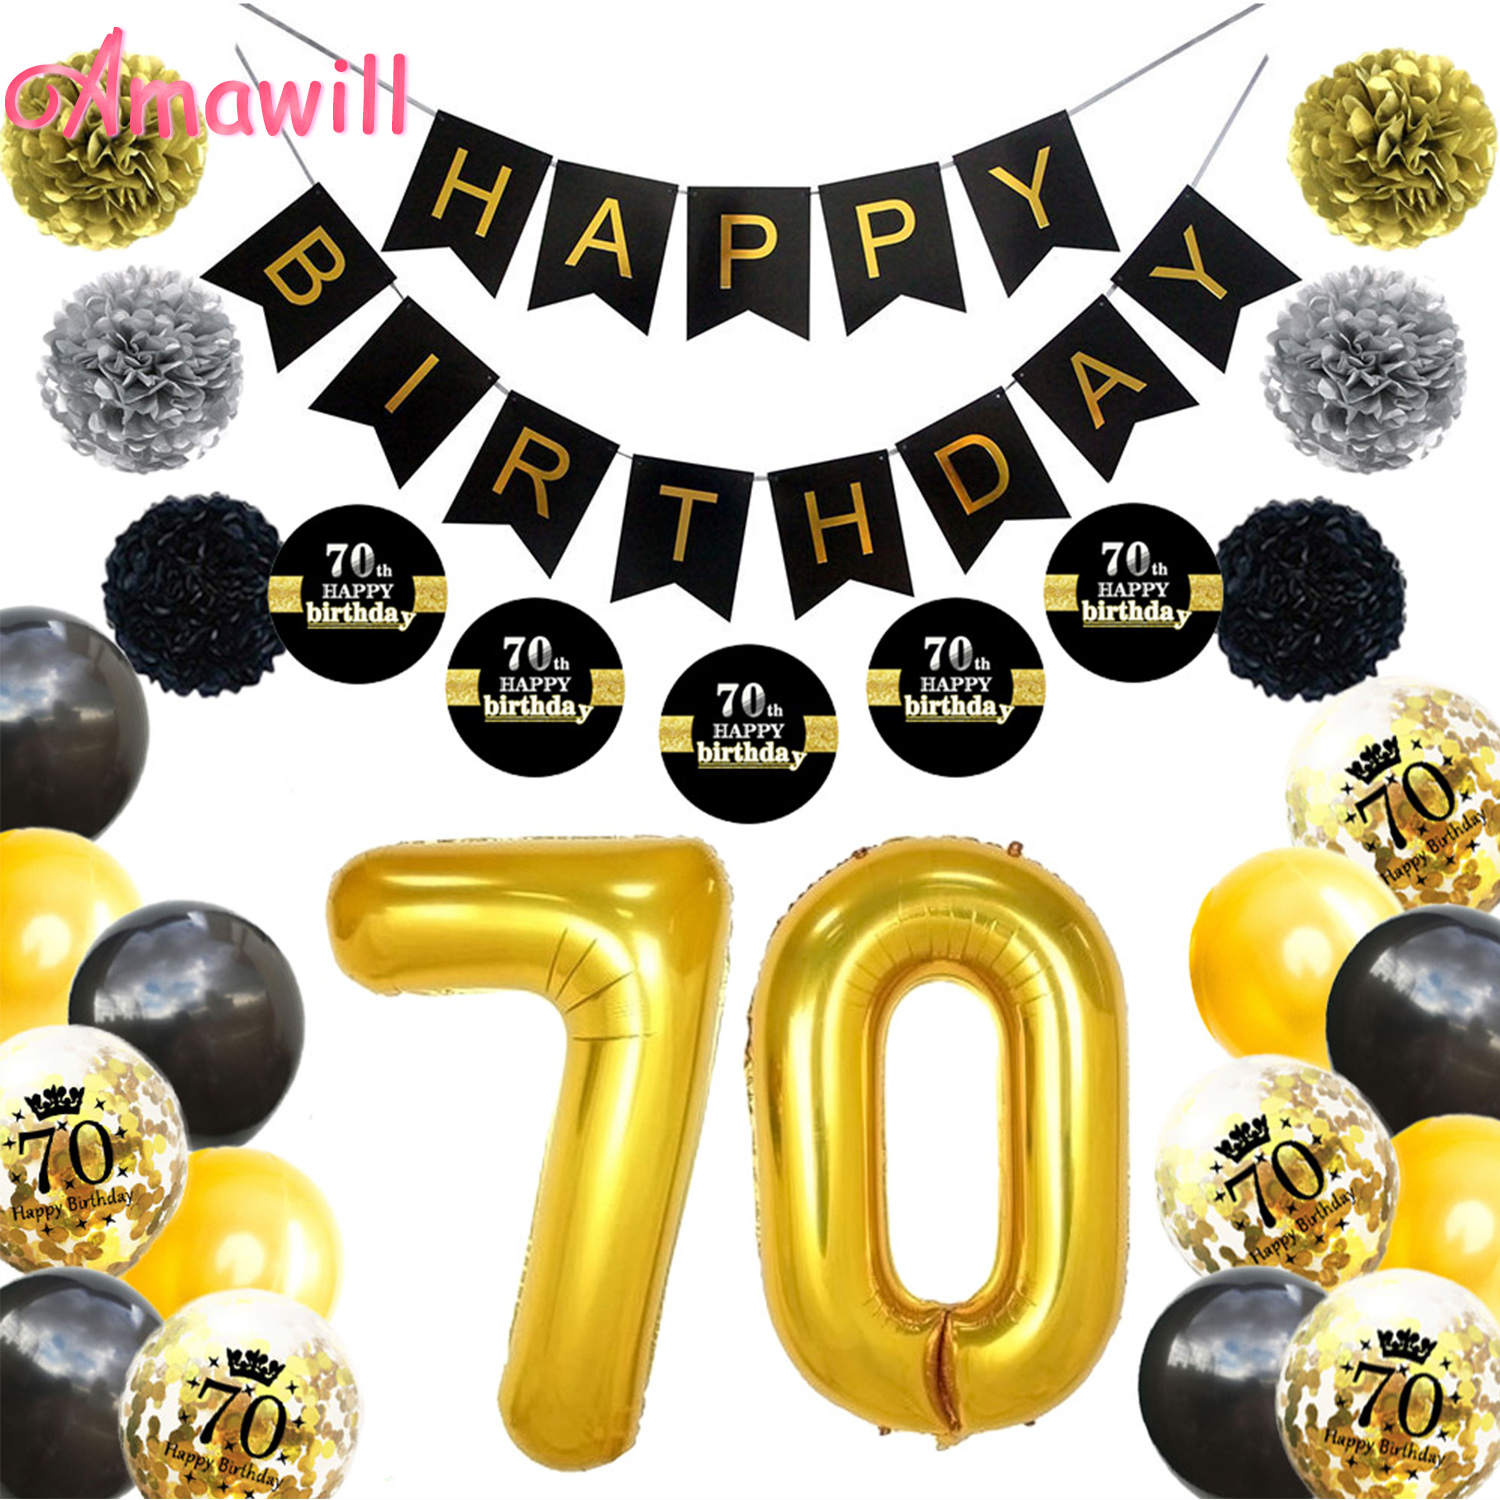 Amawil Adult <font><b>70th</b></font> <font><b>Birthday</b></font> Party Decorations Kit Black Banner Stickers Paper Pompom <font><b>70th</b></font> Happy <font><b>Birthday</b></font> Latex Confetti Ballon 7D image